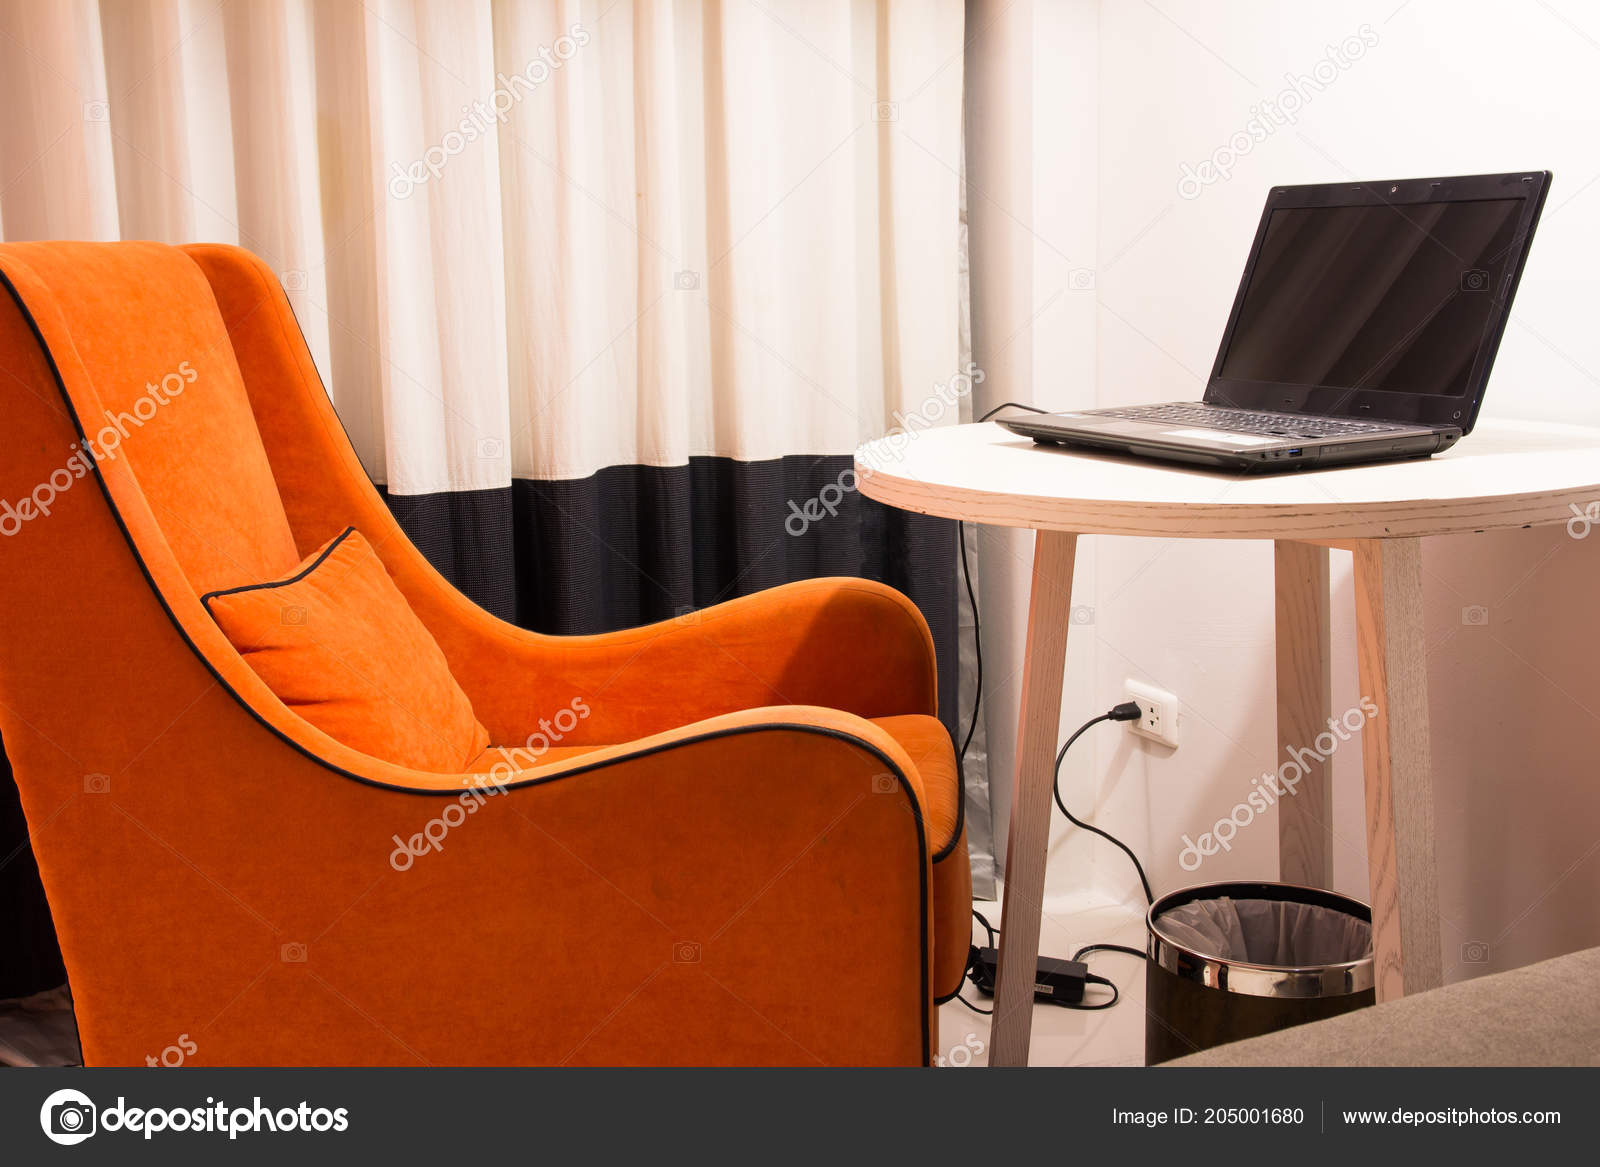 depositphotos stock photo living room armchair table